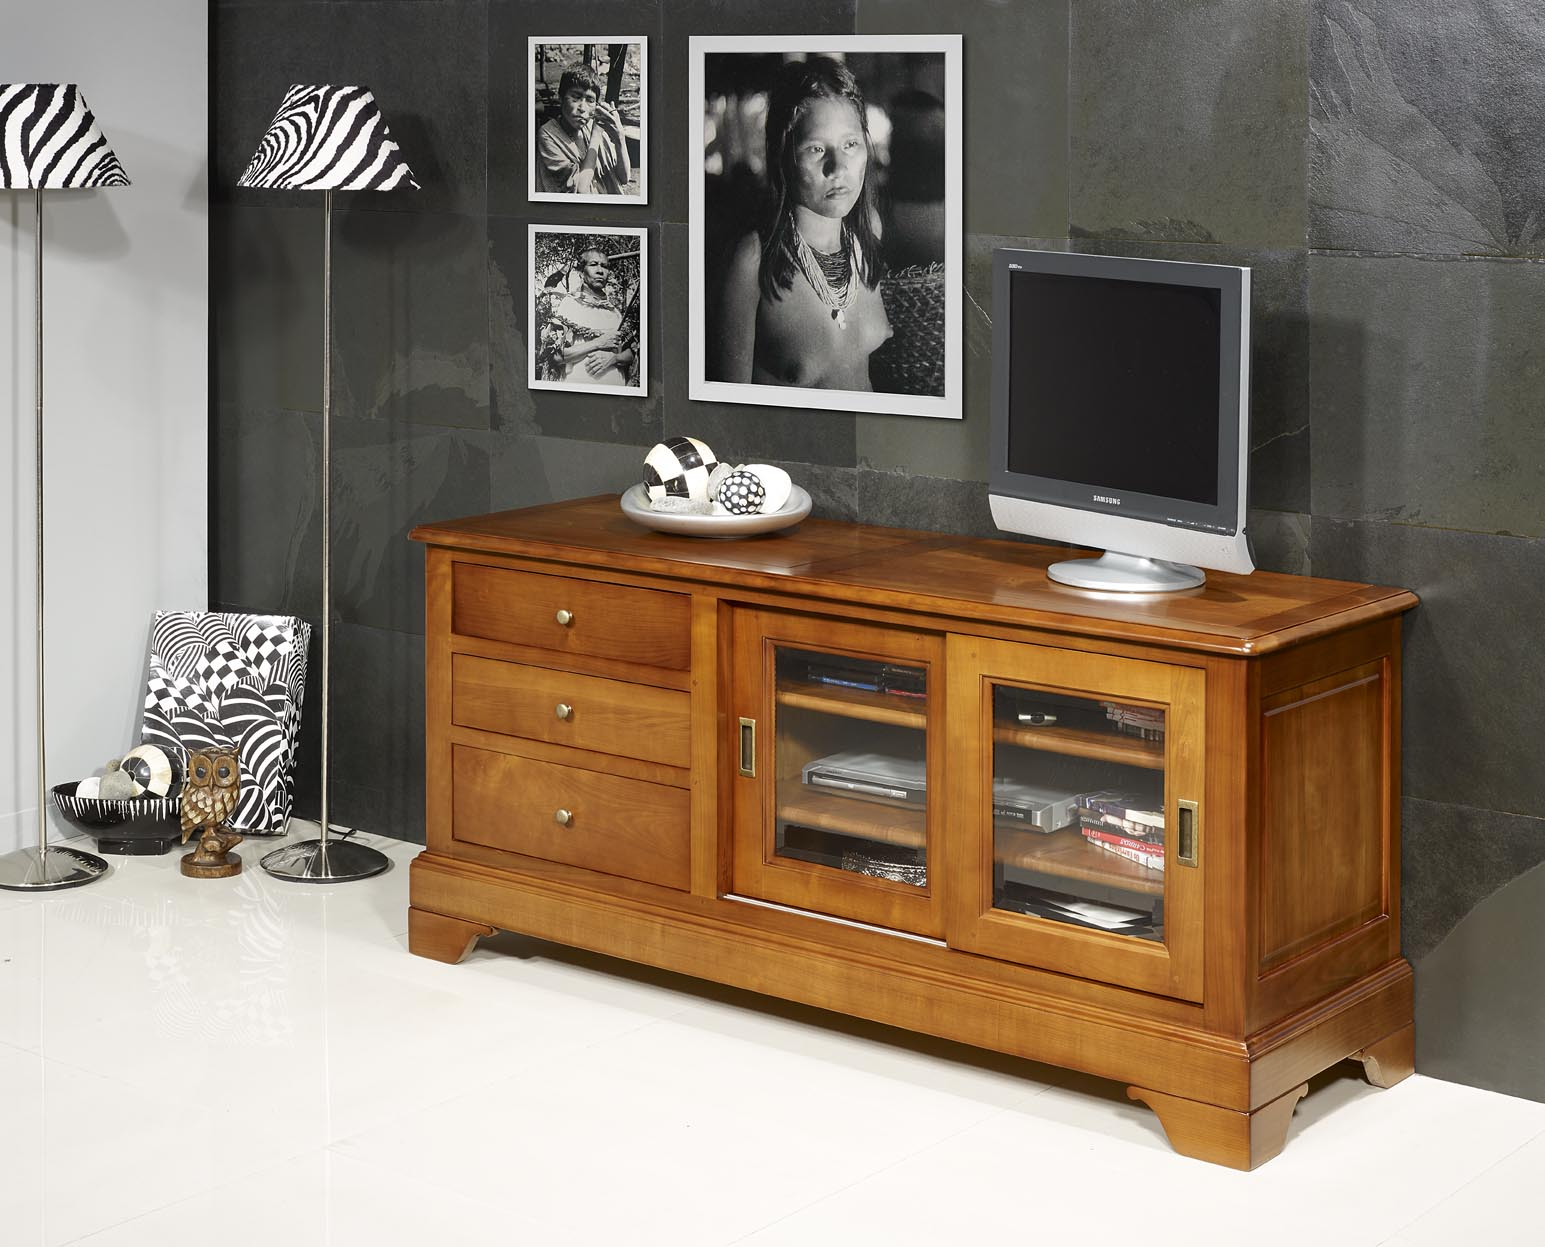 meuble tv 16 9eme martine en merisier massif de style. Black Bedroom Furniture Sets. Home Design Ideas